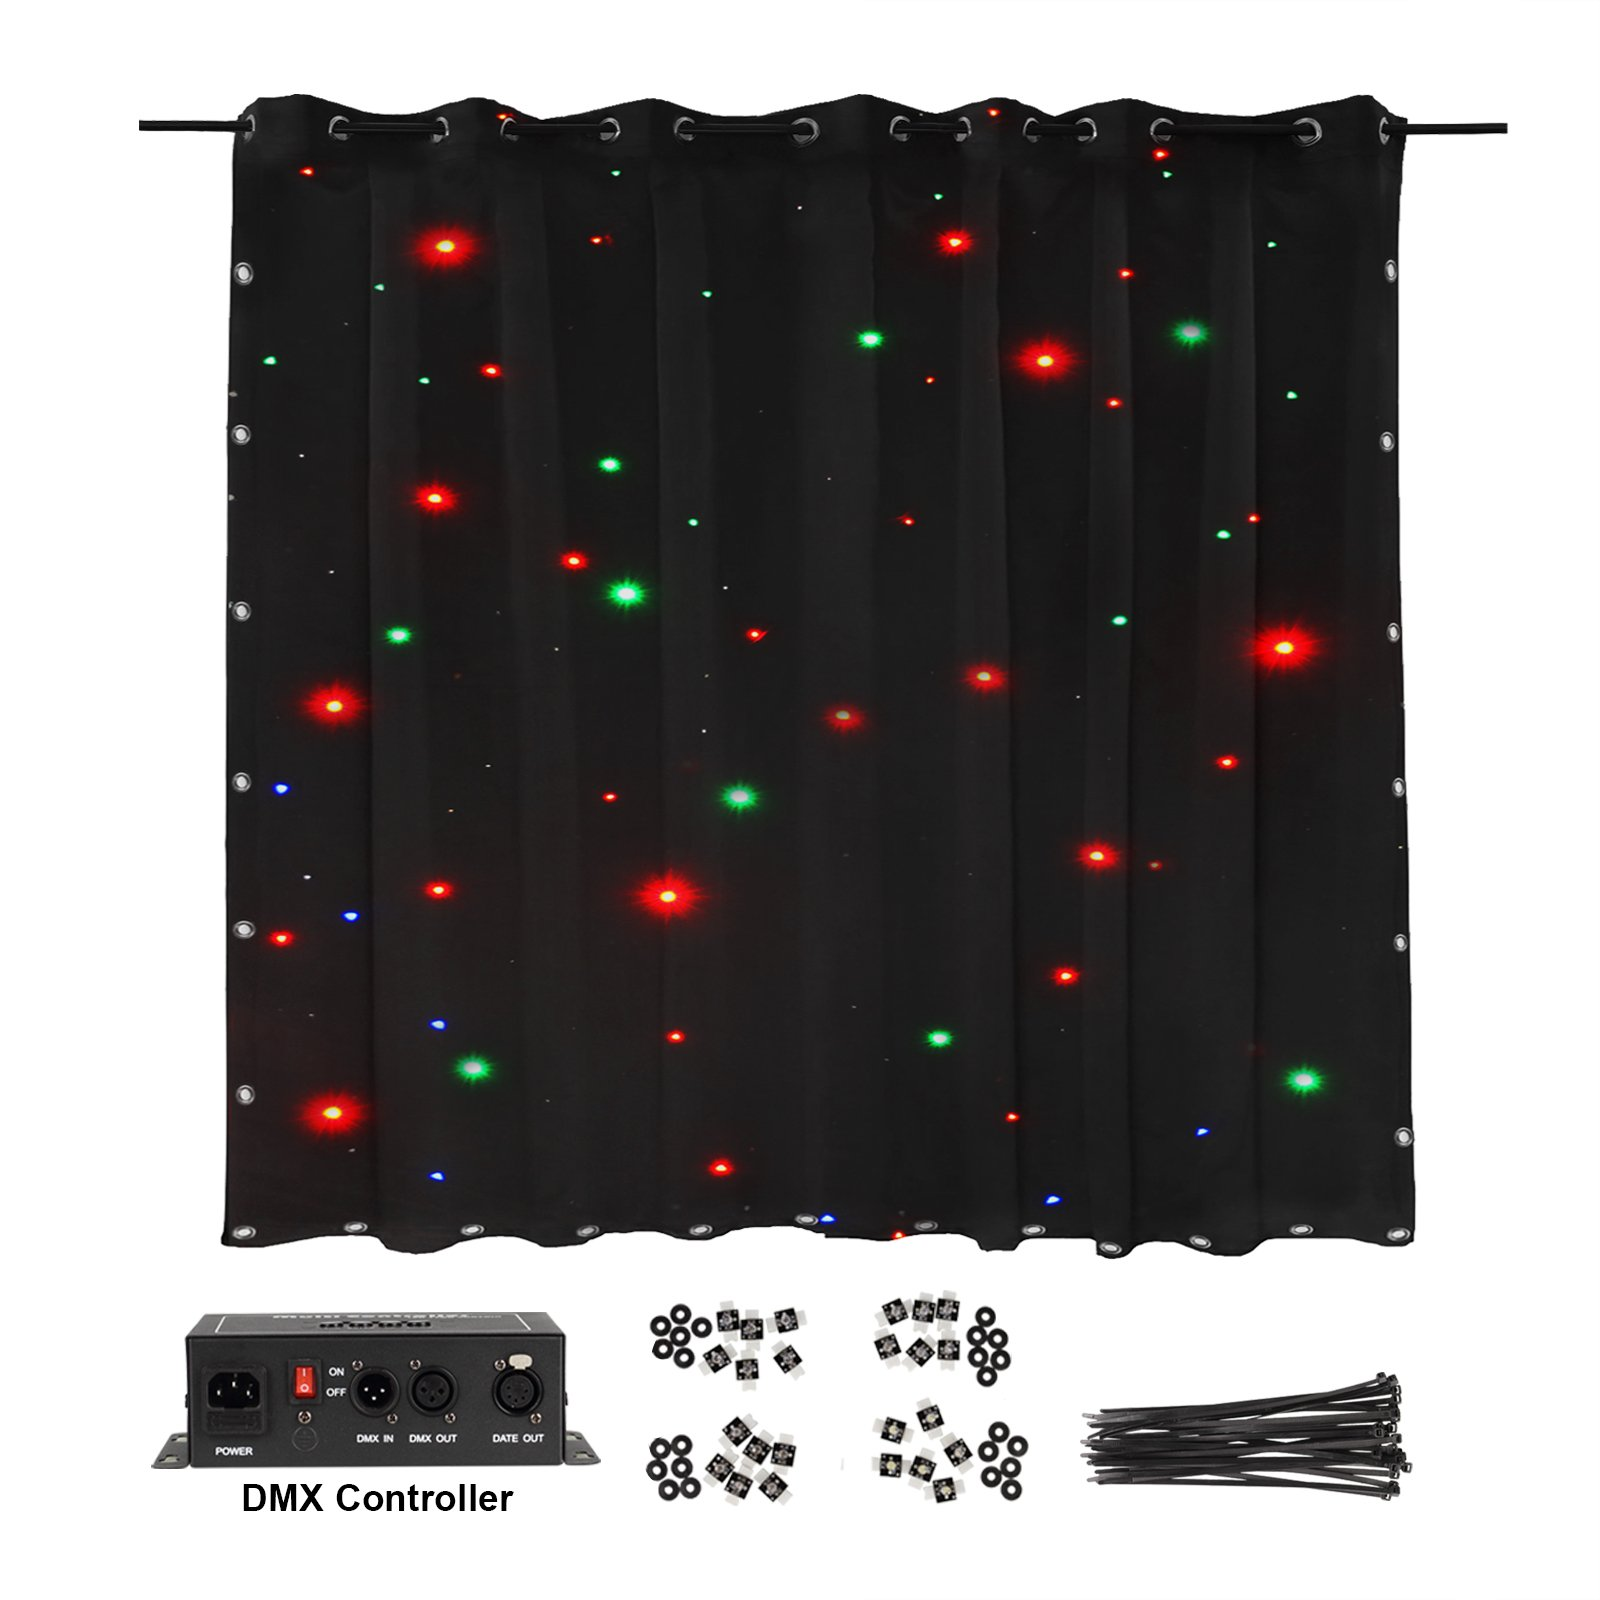 LED Stage Drape Star Cloth 2x3m Curtain Backdrop Background Screen Flame Retarded DMX Controller Lighting for Wedding Christmas Party Club Show